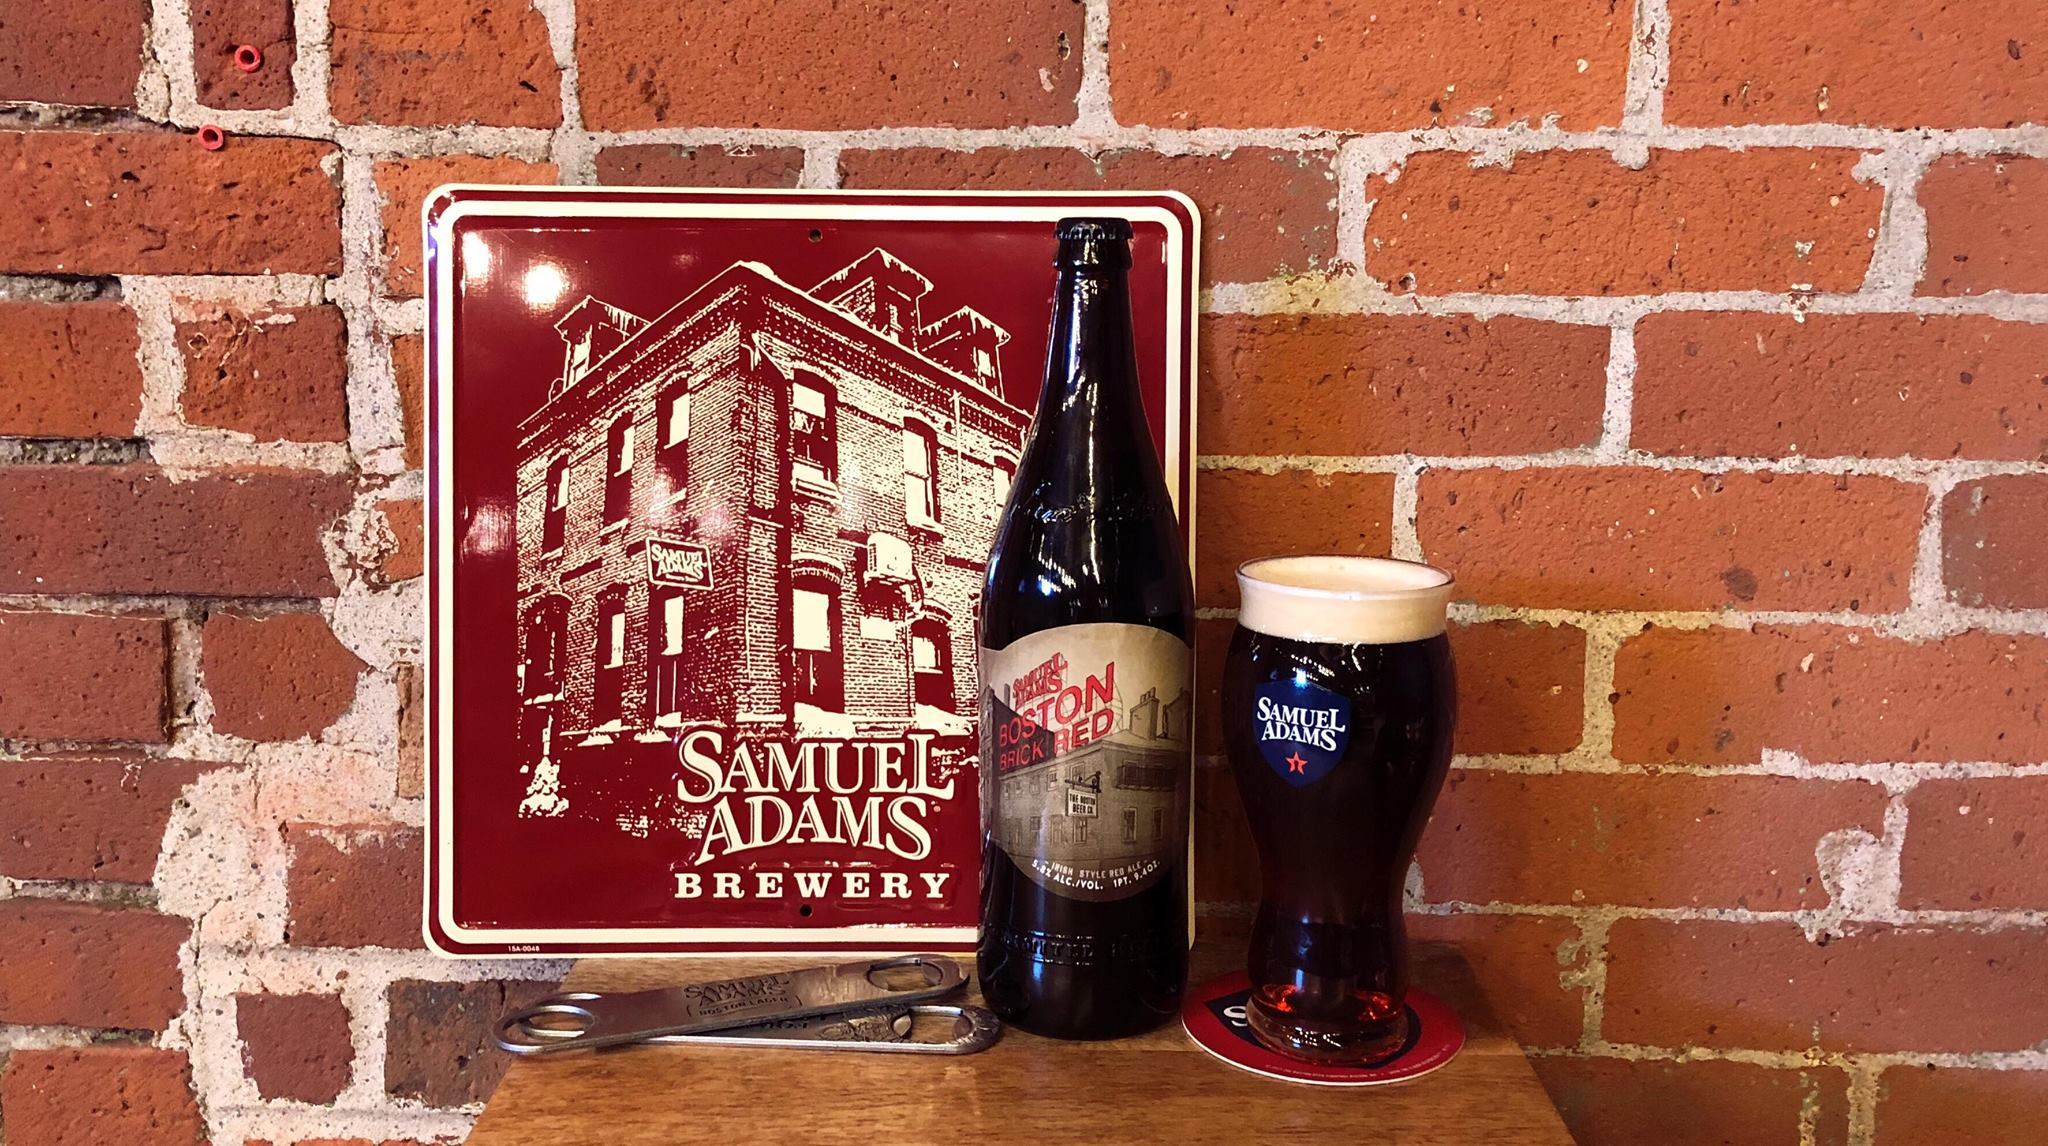 This Month Samuel Adams Is Celebrating Their February After Hours At The Brewery With A Bottle Release Of Drum Roll Boston Brick Red